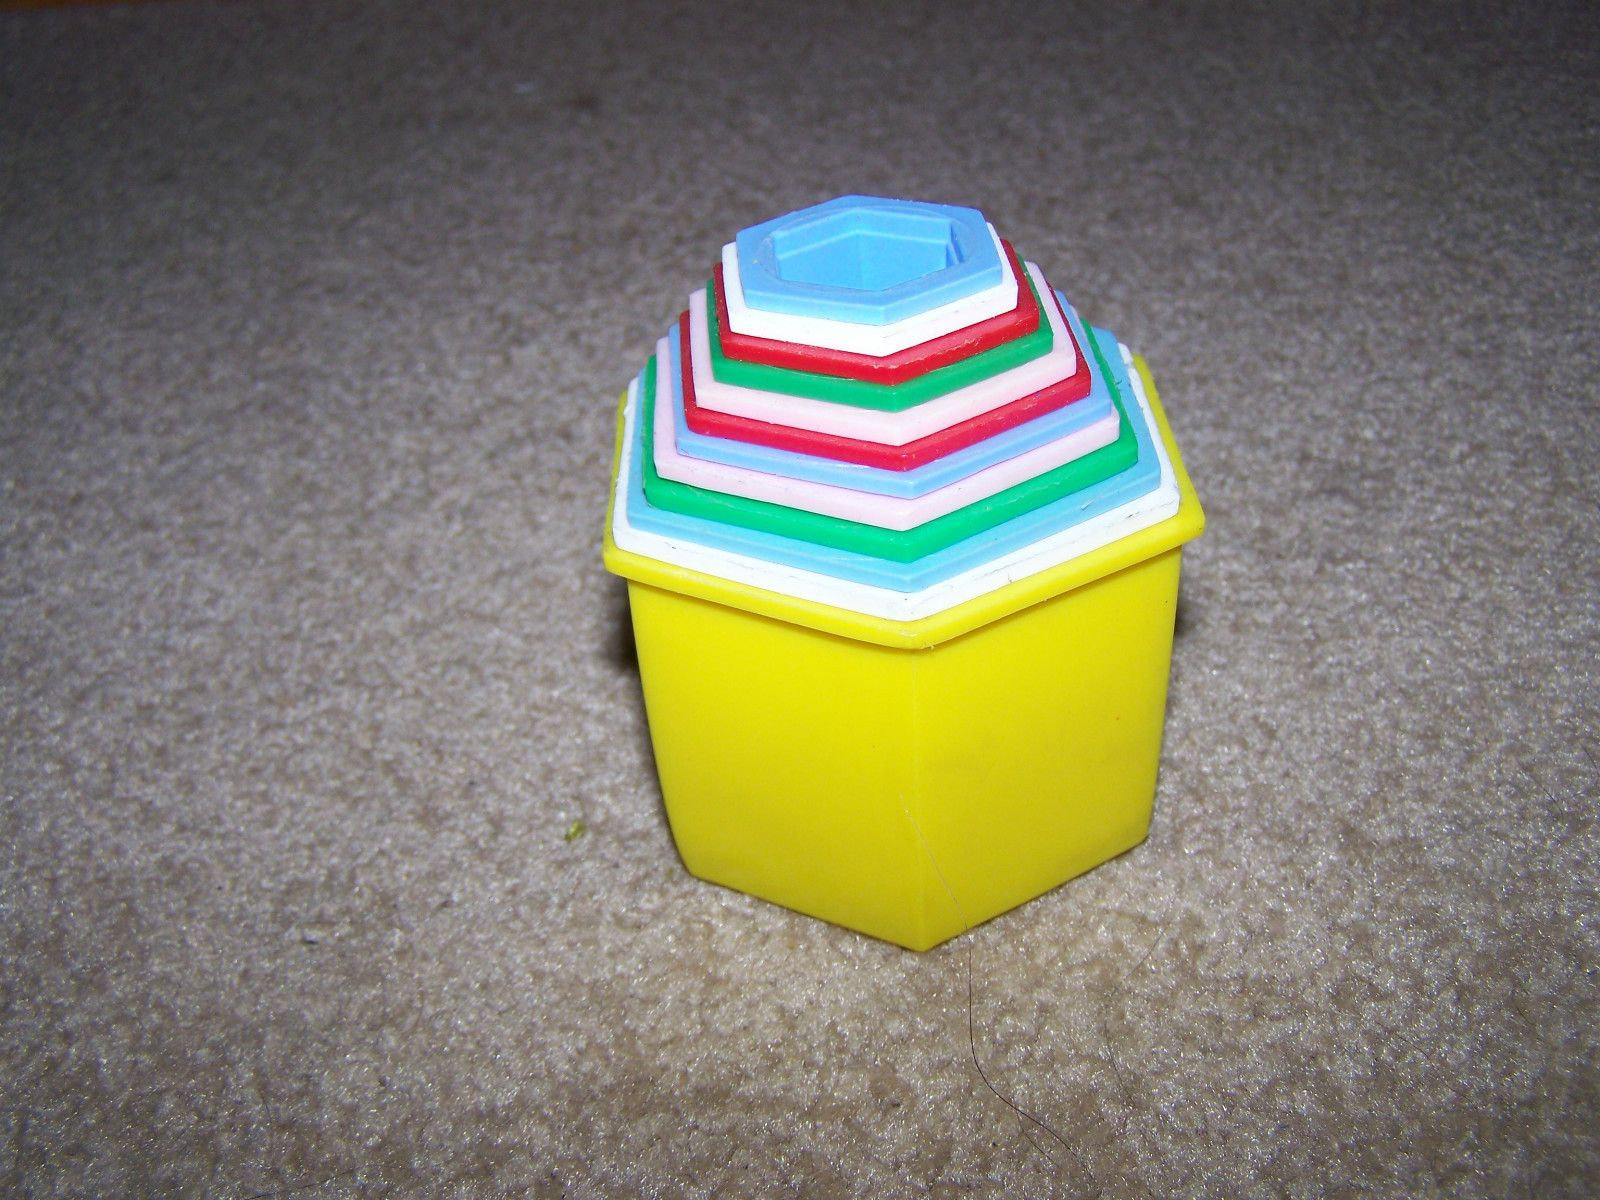 Childs Toy Stacking Nesting Cups